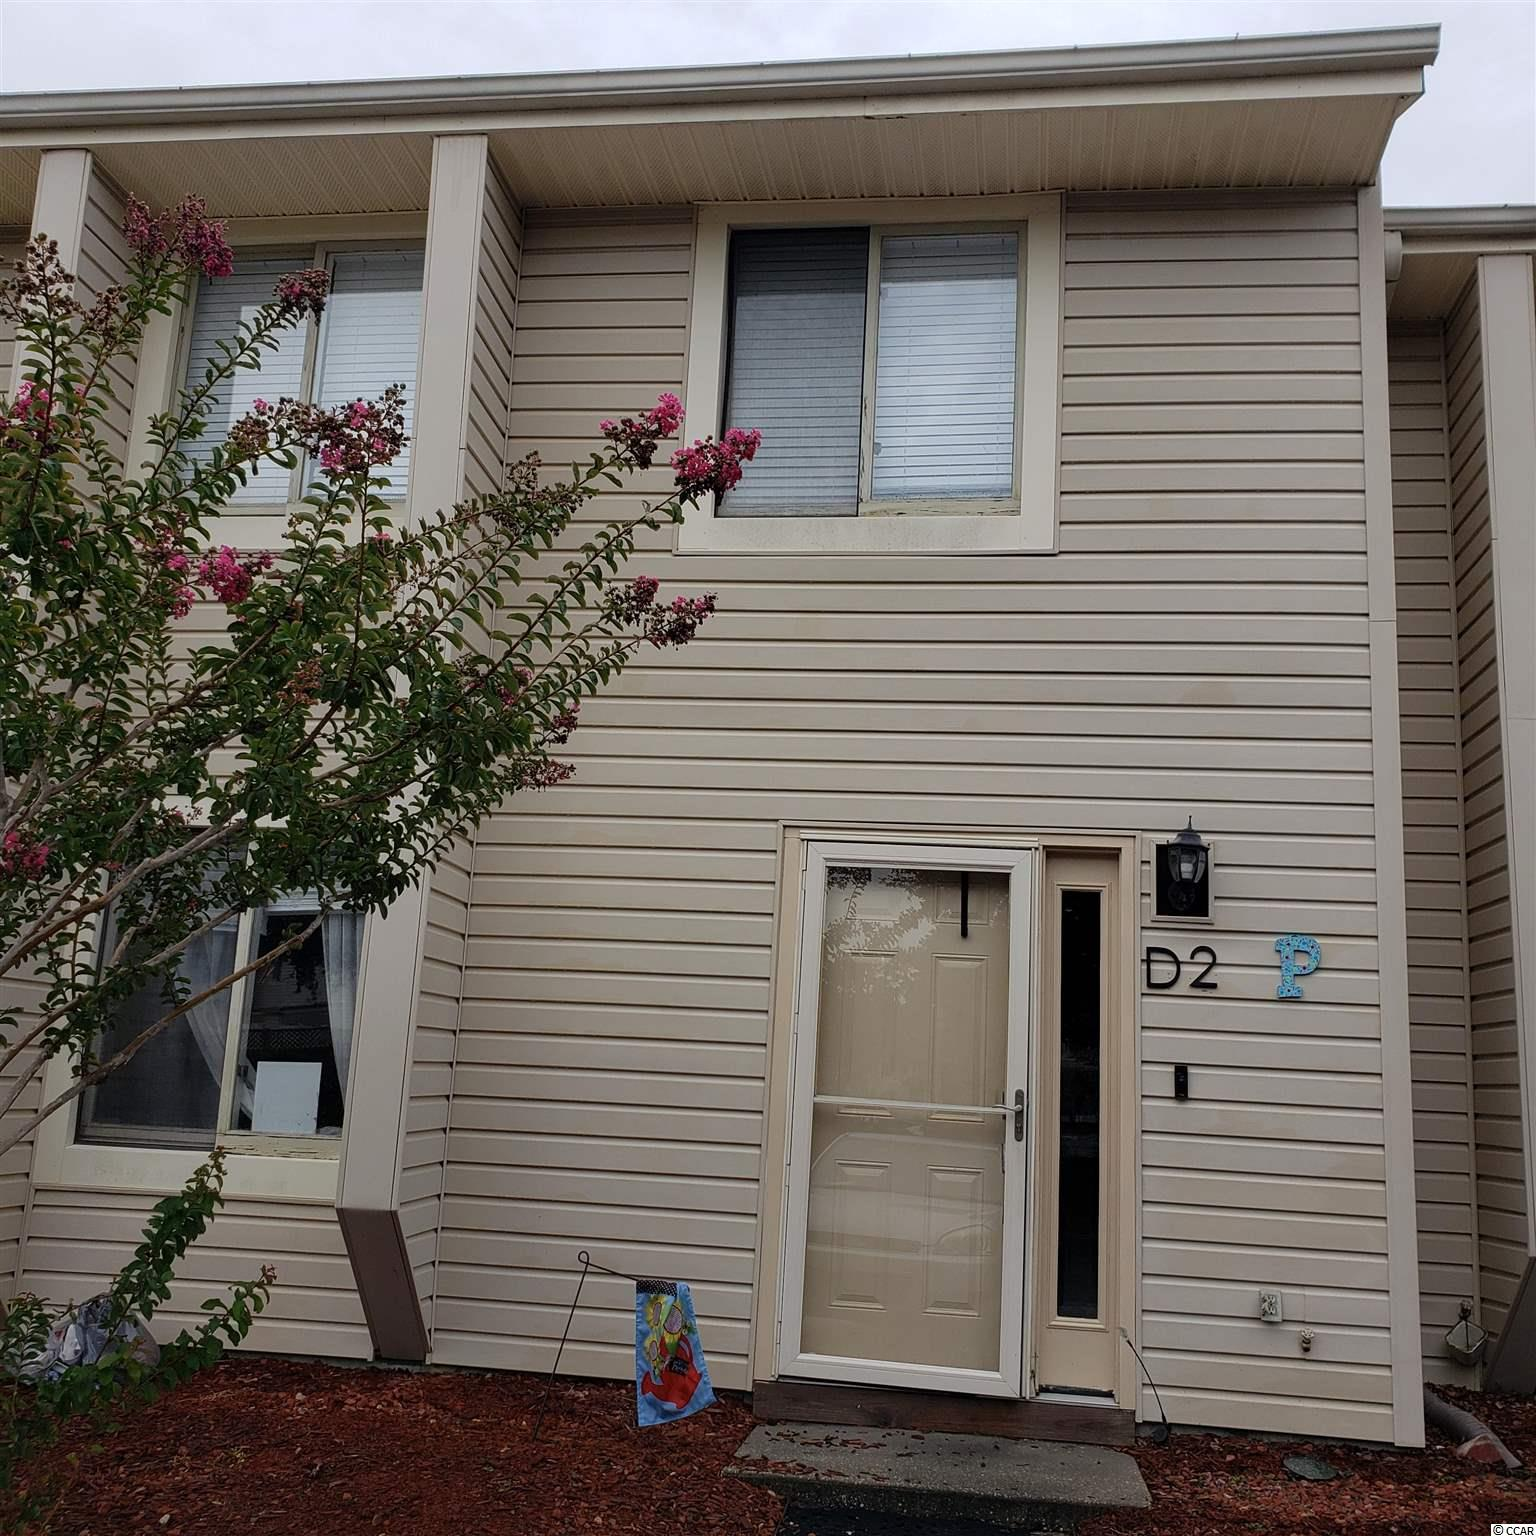 A great location across from the Seacoast McLeod Hospital and medical center.  Close to shopping, dining and entertainment. Less than 4 miles to the beach.   Upgraded appliances in the kitchen, recently replaced water heater, HVAC and roofing. New sliding glass door in the back with a nice view and yard area. Project pool is salt water and wonderful! Back yard patio may be able to be extended with HOA approval. Back yard is very nice and open, you are not looking directly into anyone else yards